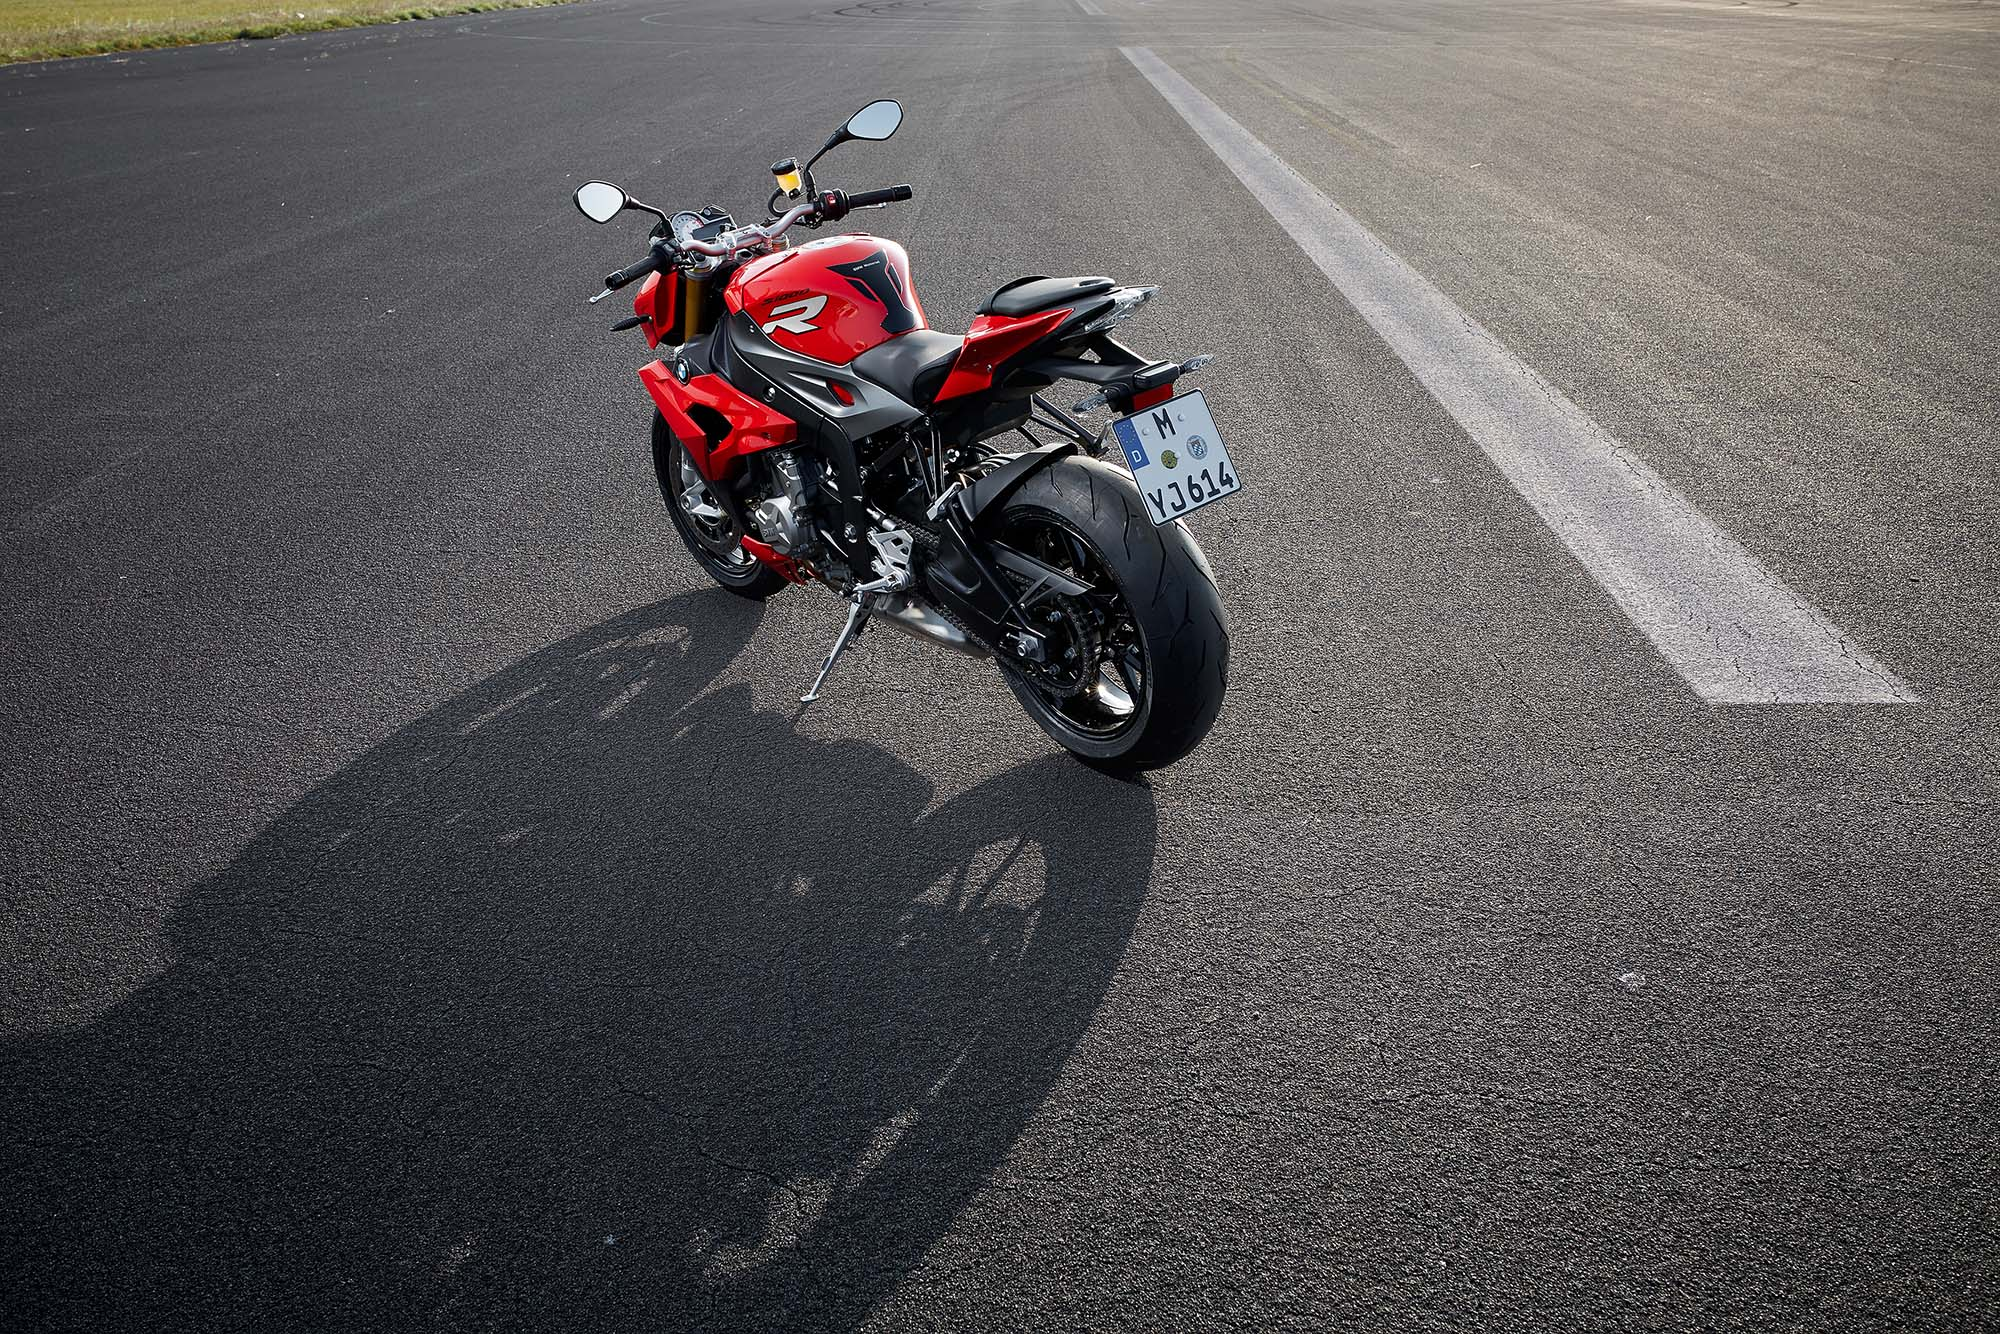 http://www.asphaltandrubber.com/wp-content/gallery/2014-bmw-s1000r/2014-bmw-s1000r-action-79.jpg